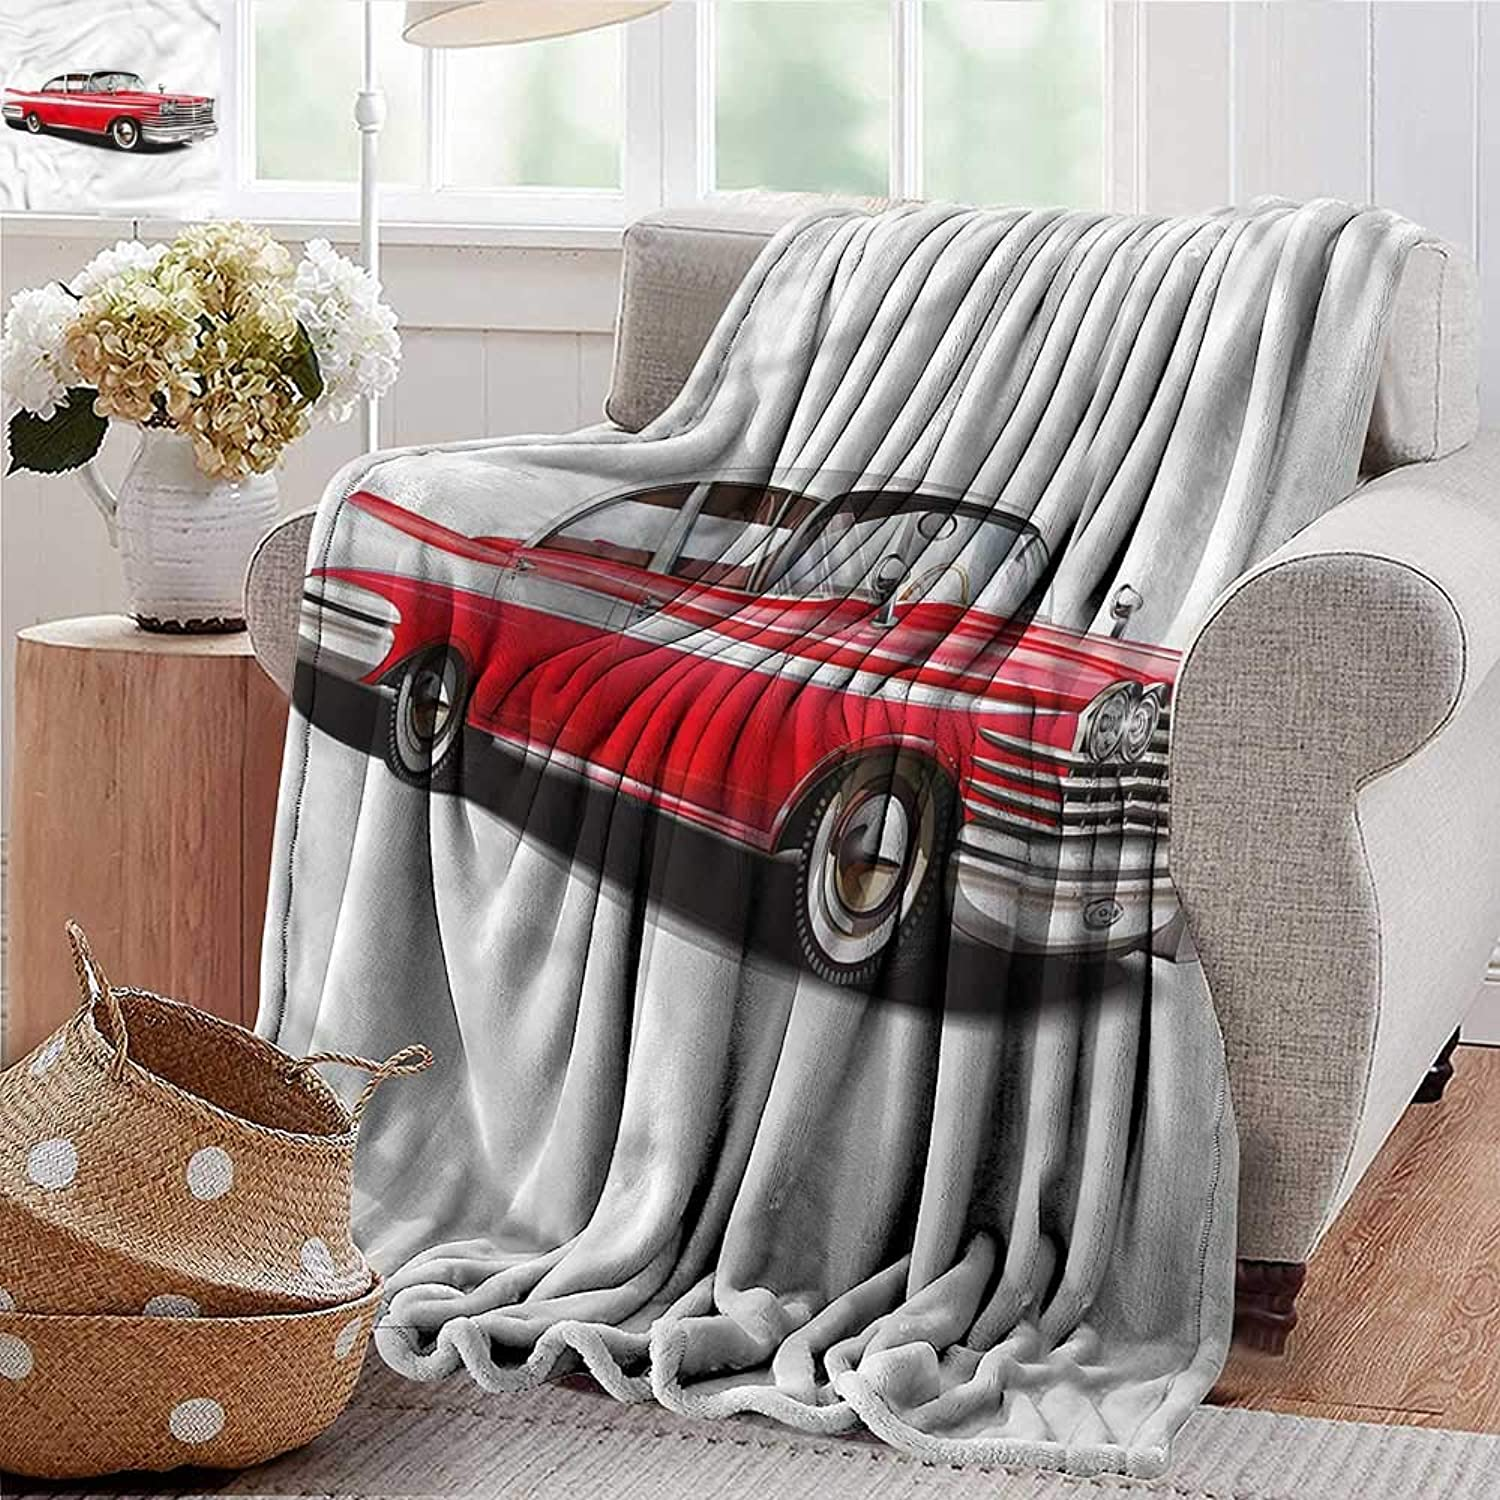 Wearable Blanket Boys Room,Vintage Engine Retro Car Microfiber All Season Blanket for Bed or Couch Multicolor 35 x60